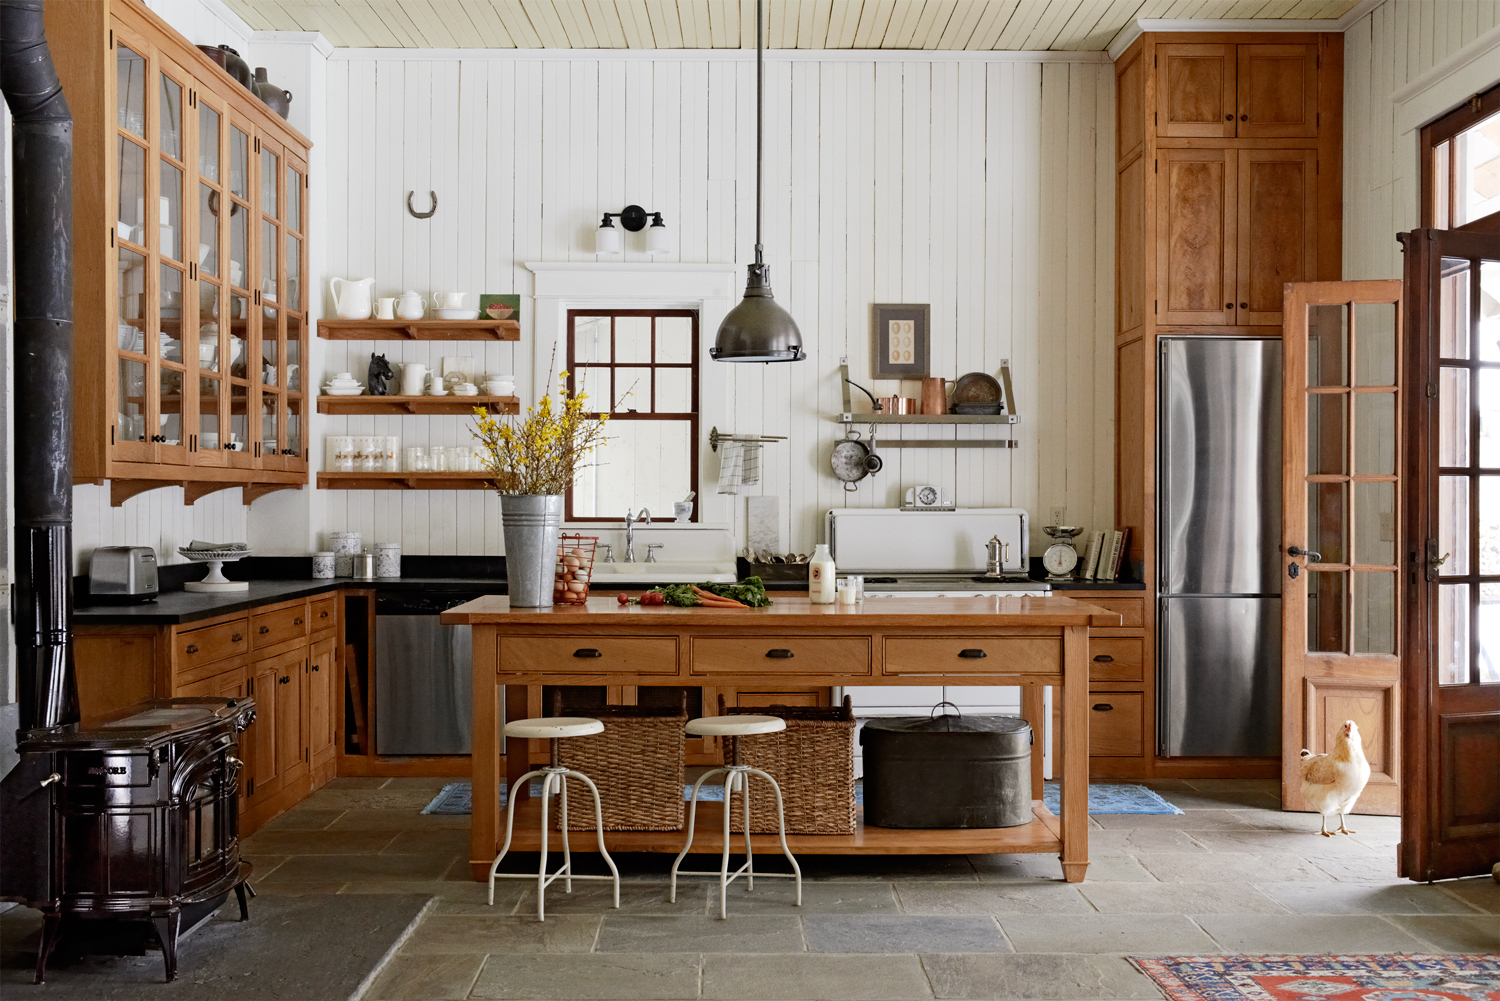 101 Kitchen Design Ideas - Pictures of Country Kitchens Decorating